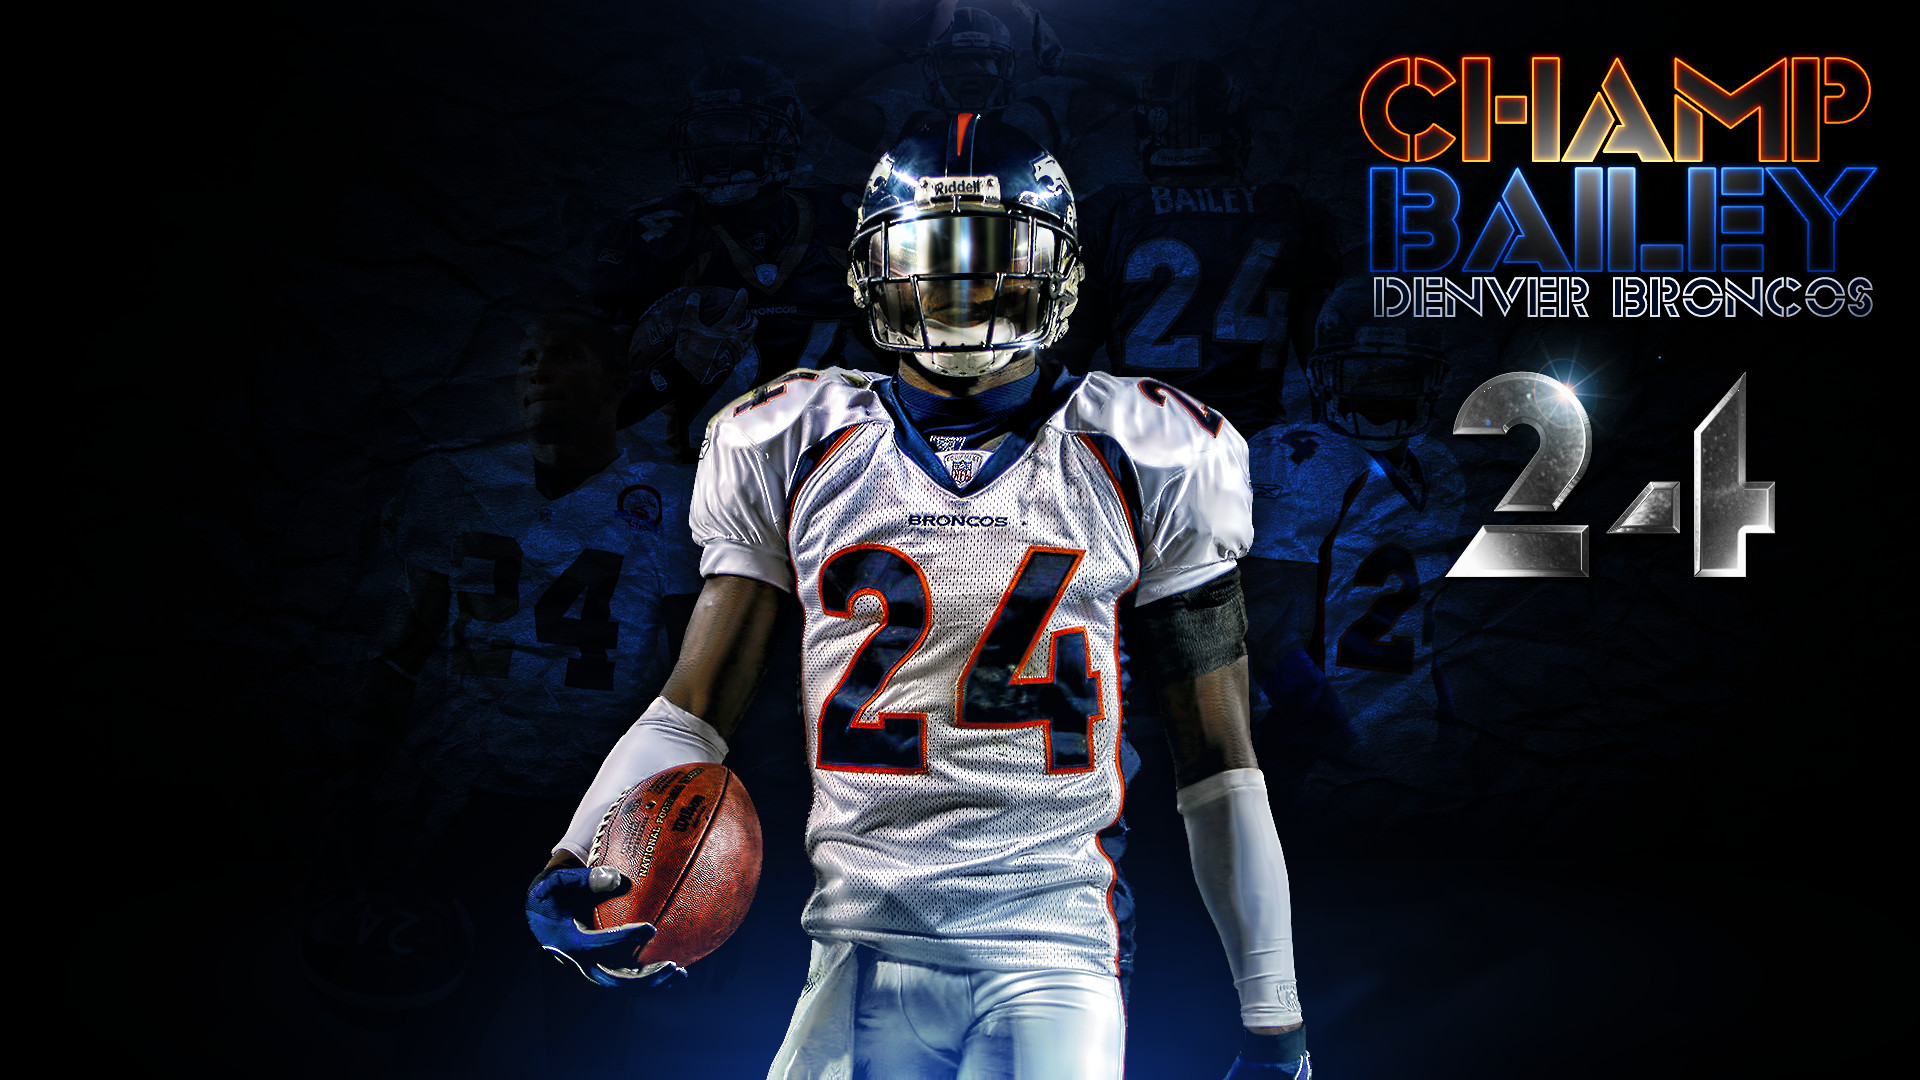 Res: 1920x1080, Champ Bailey Denver Broncos Wallpaper by DenverSportsWalls Champ Bailey Denver  Broncos Wallpaper by DenverSportsWalls